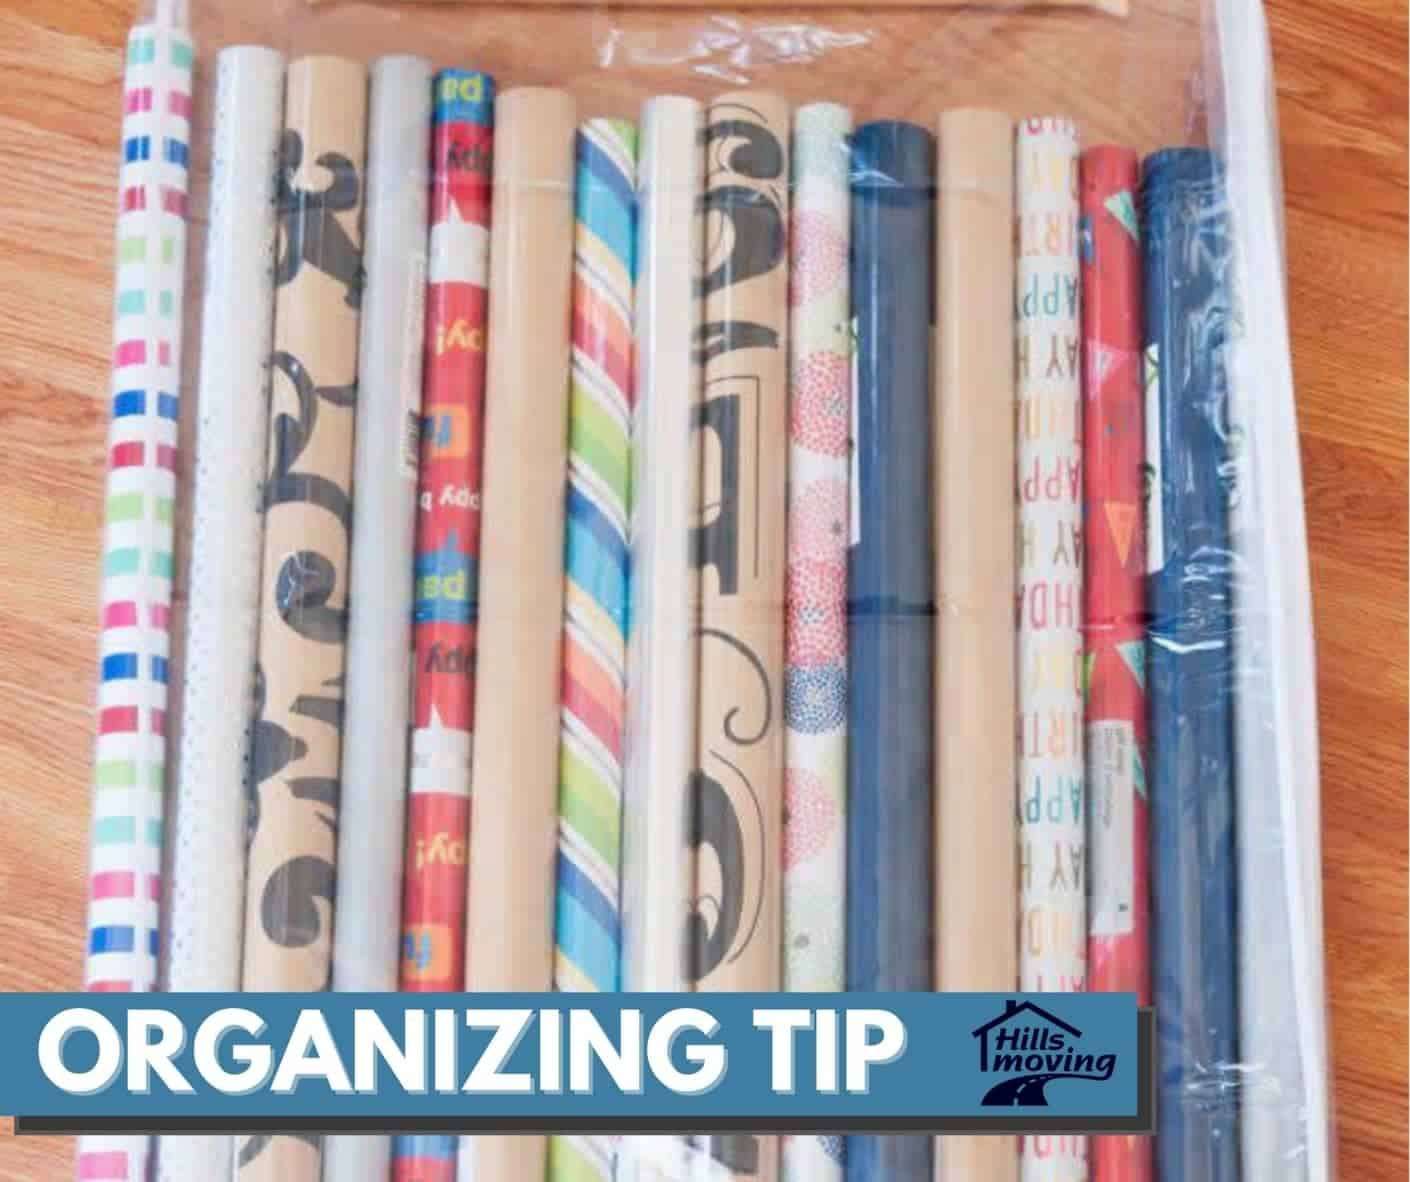 Who doesn't enjoy a great organizing tip?